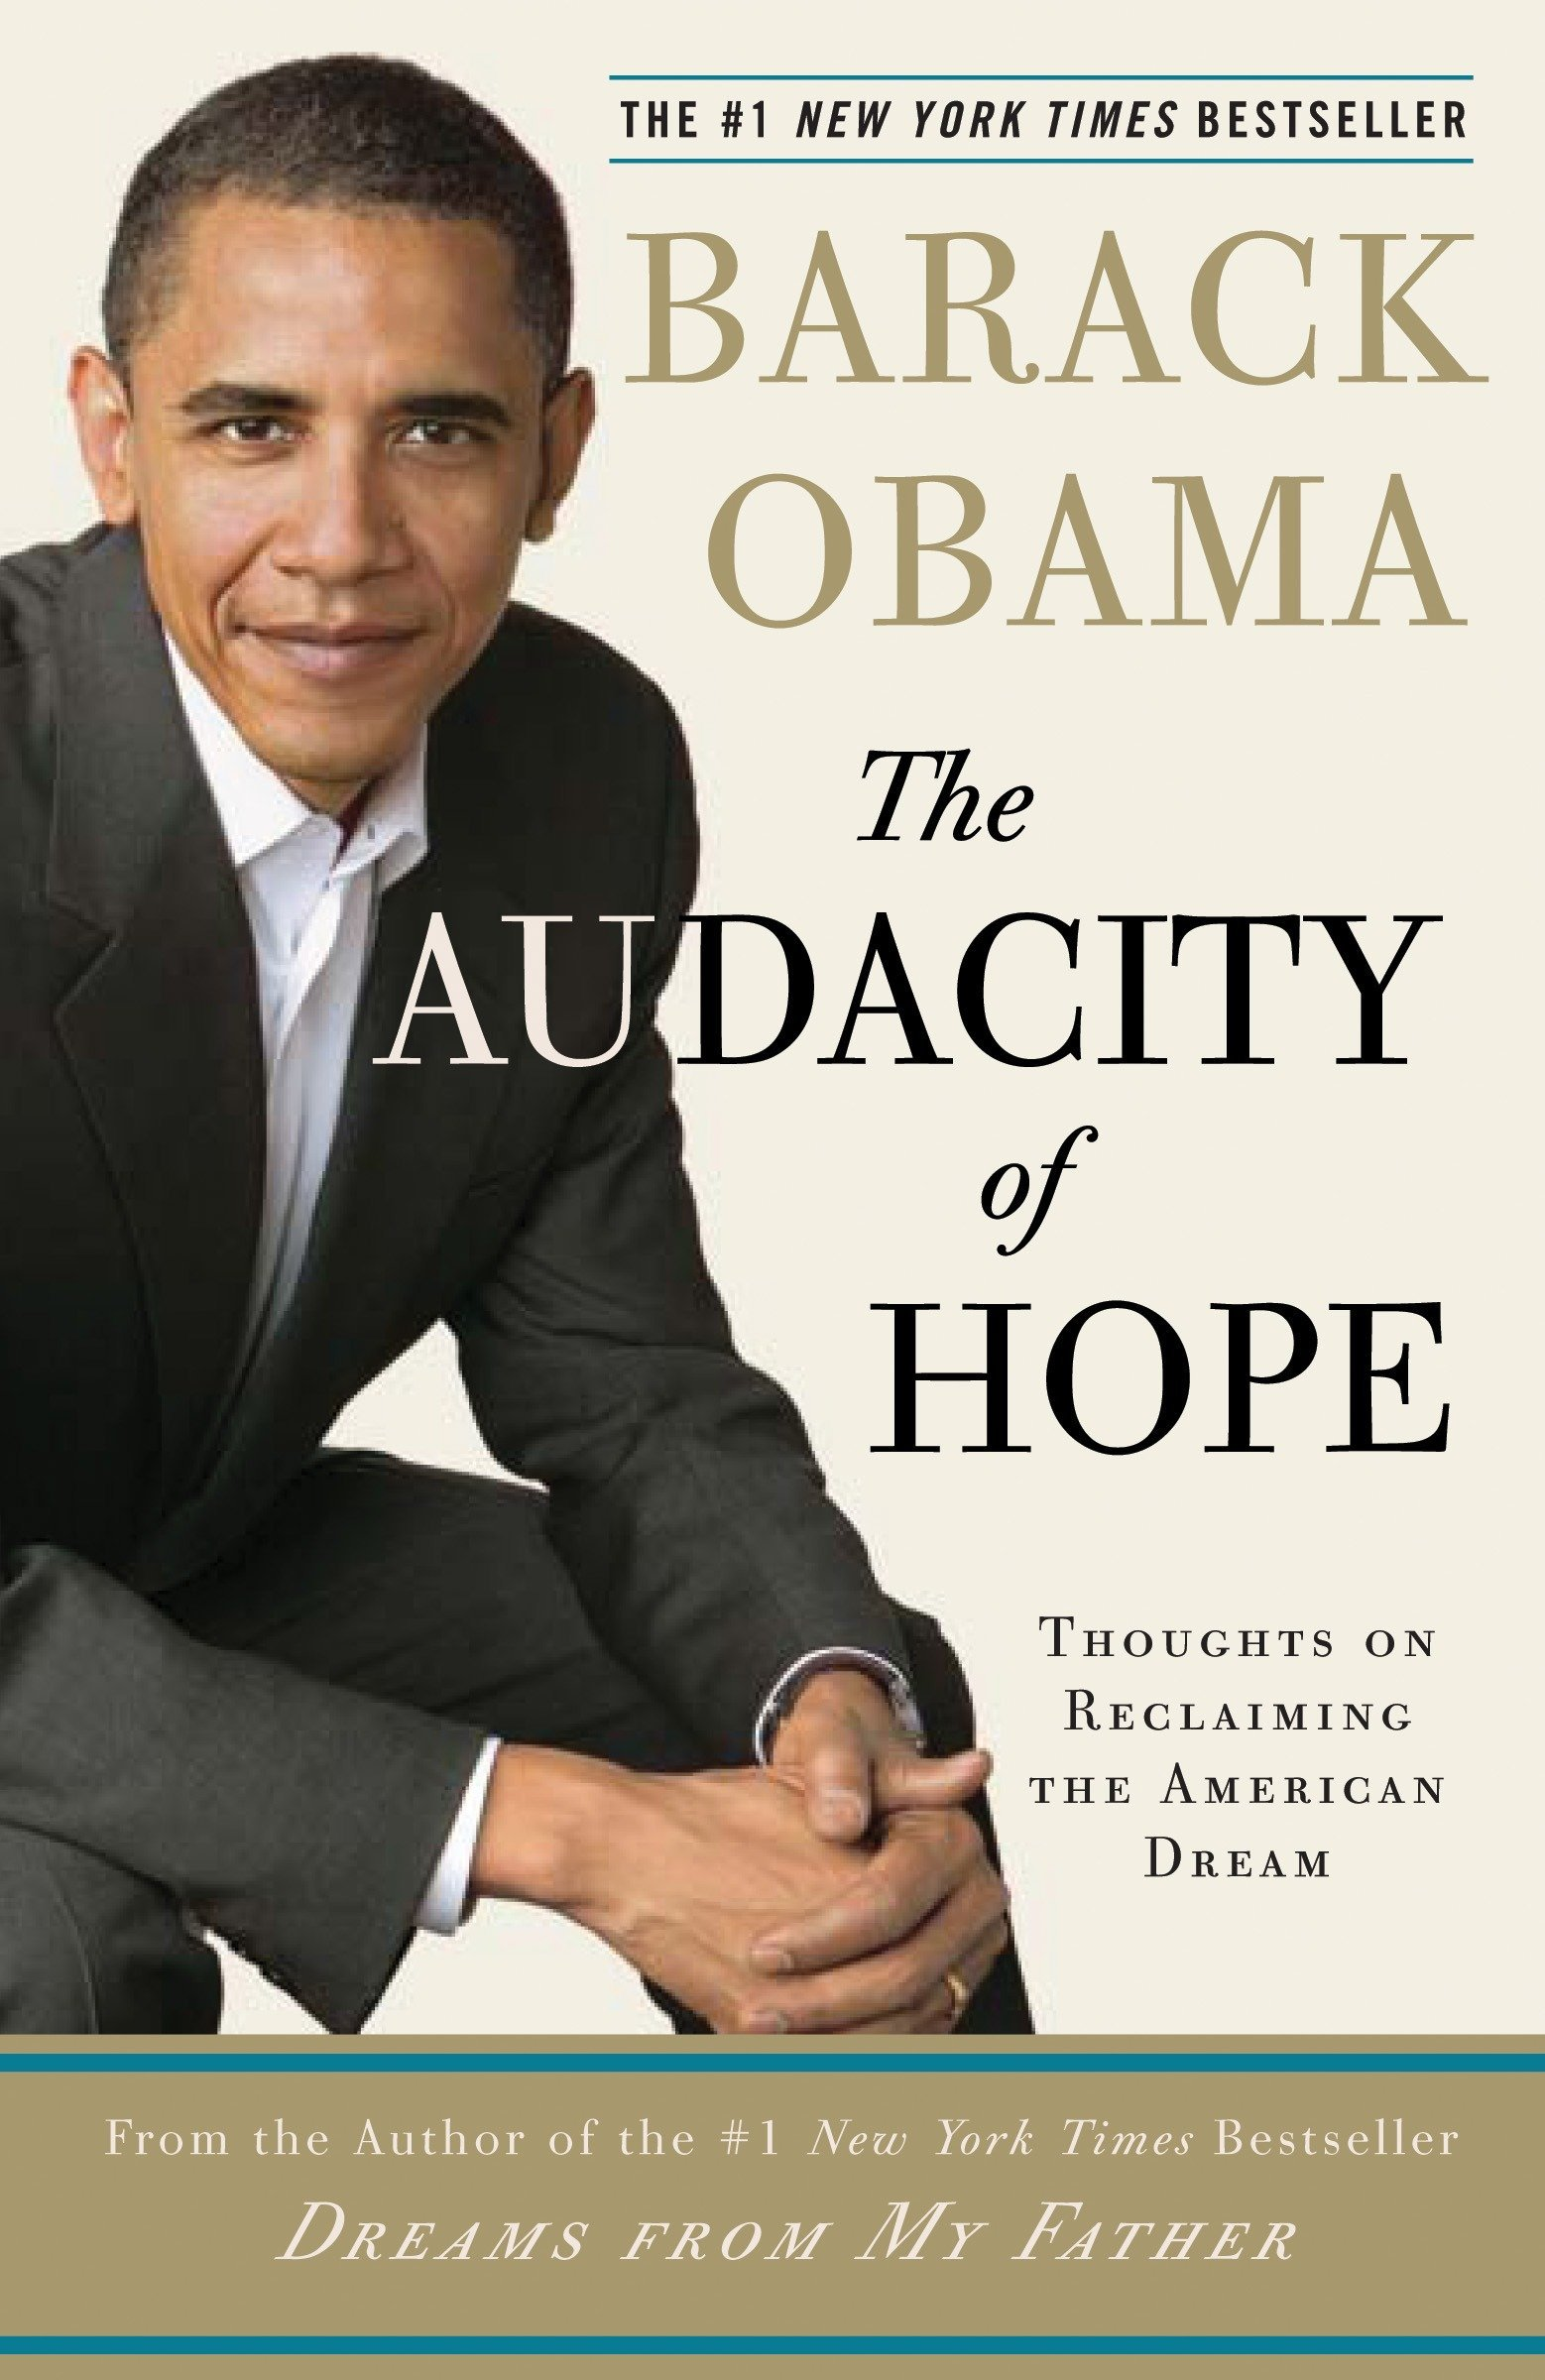 The Audacity of Hope: Thoughts on Reclaiming the American Dream PDF